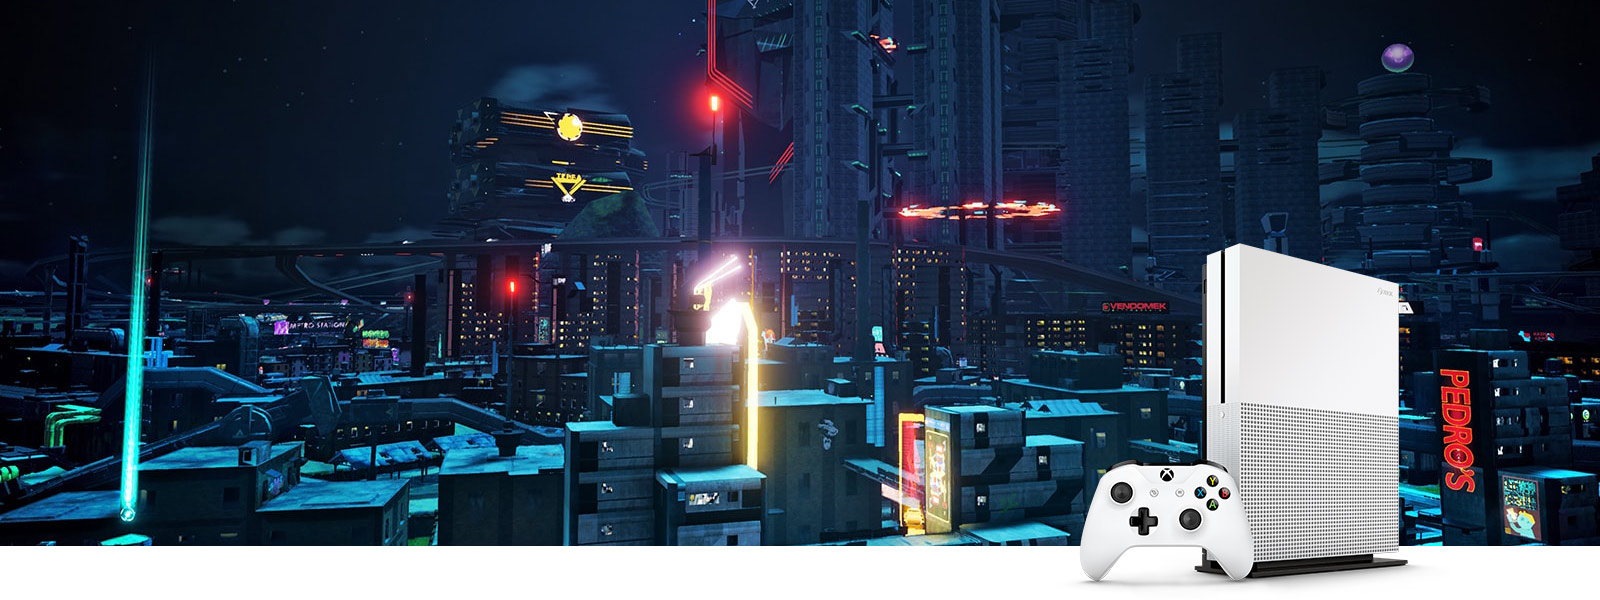 Crackdown 3 cityscape screenshot and Xbox One S vertical console with controller, viewed with high dynamic range (HDR)